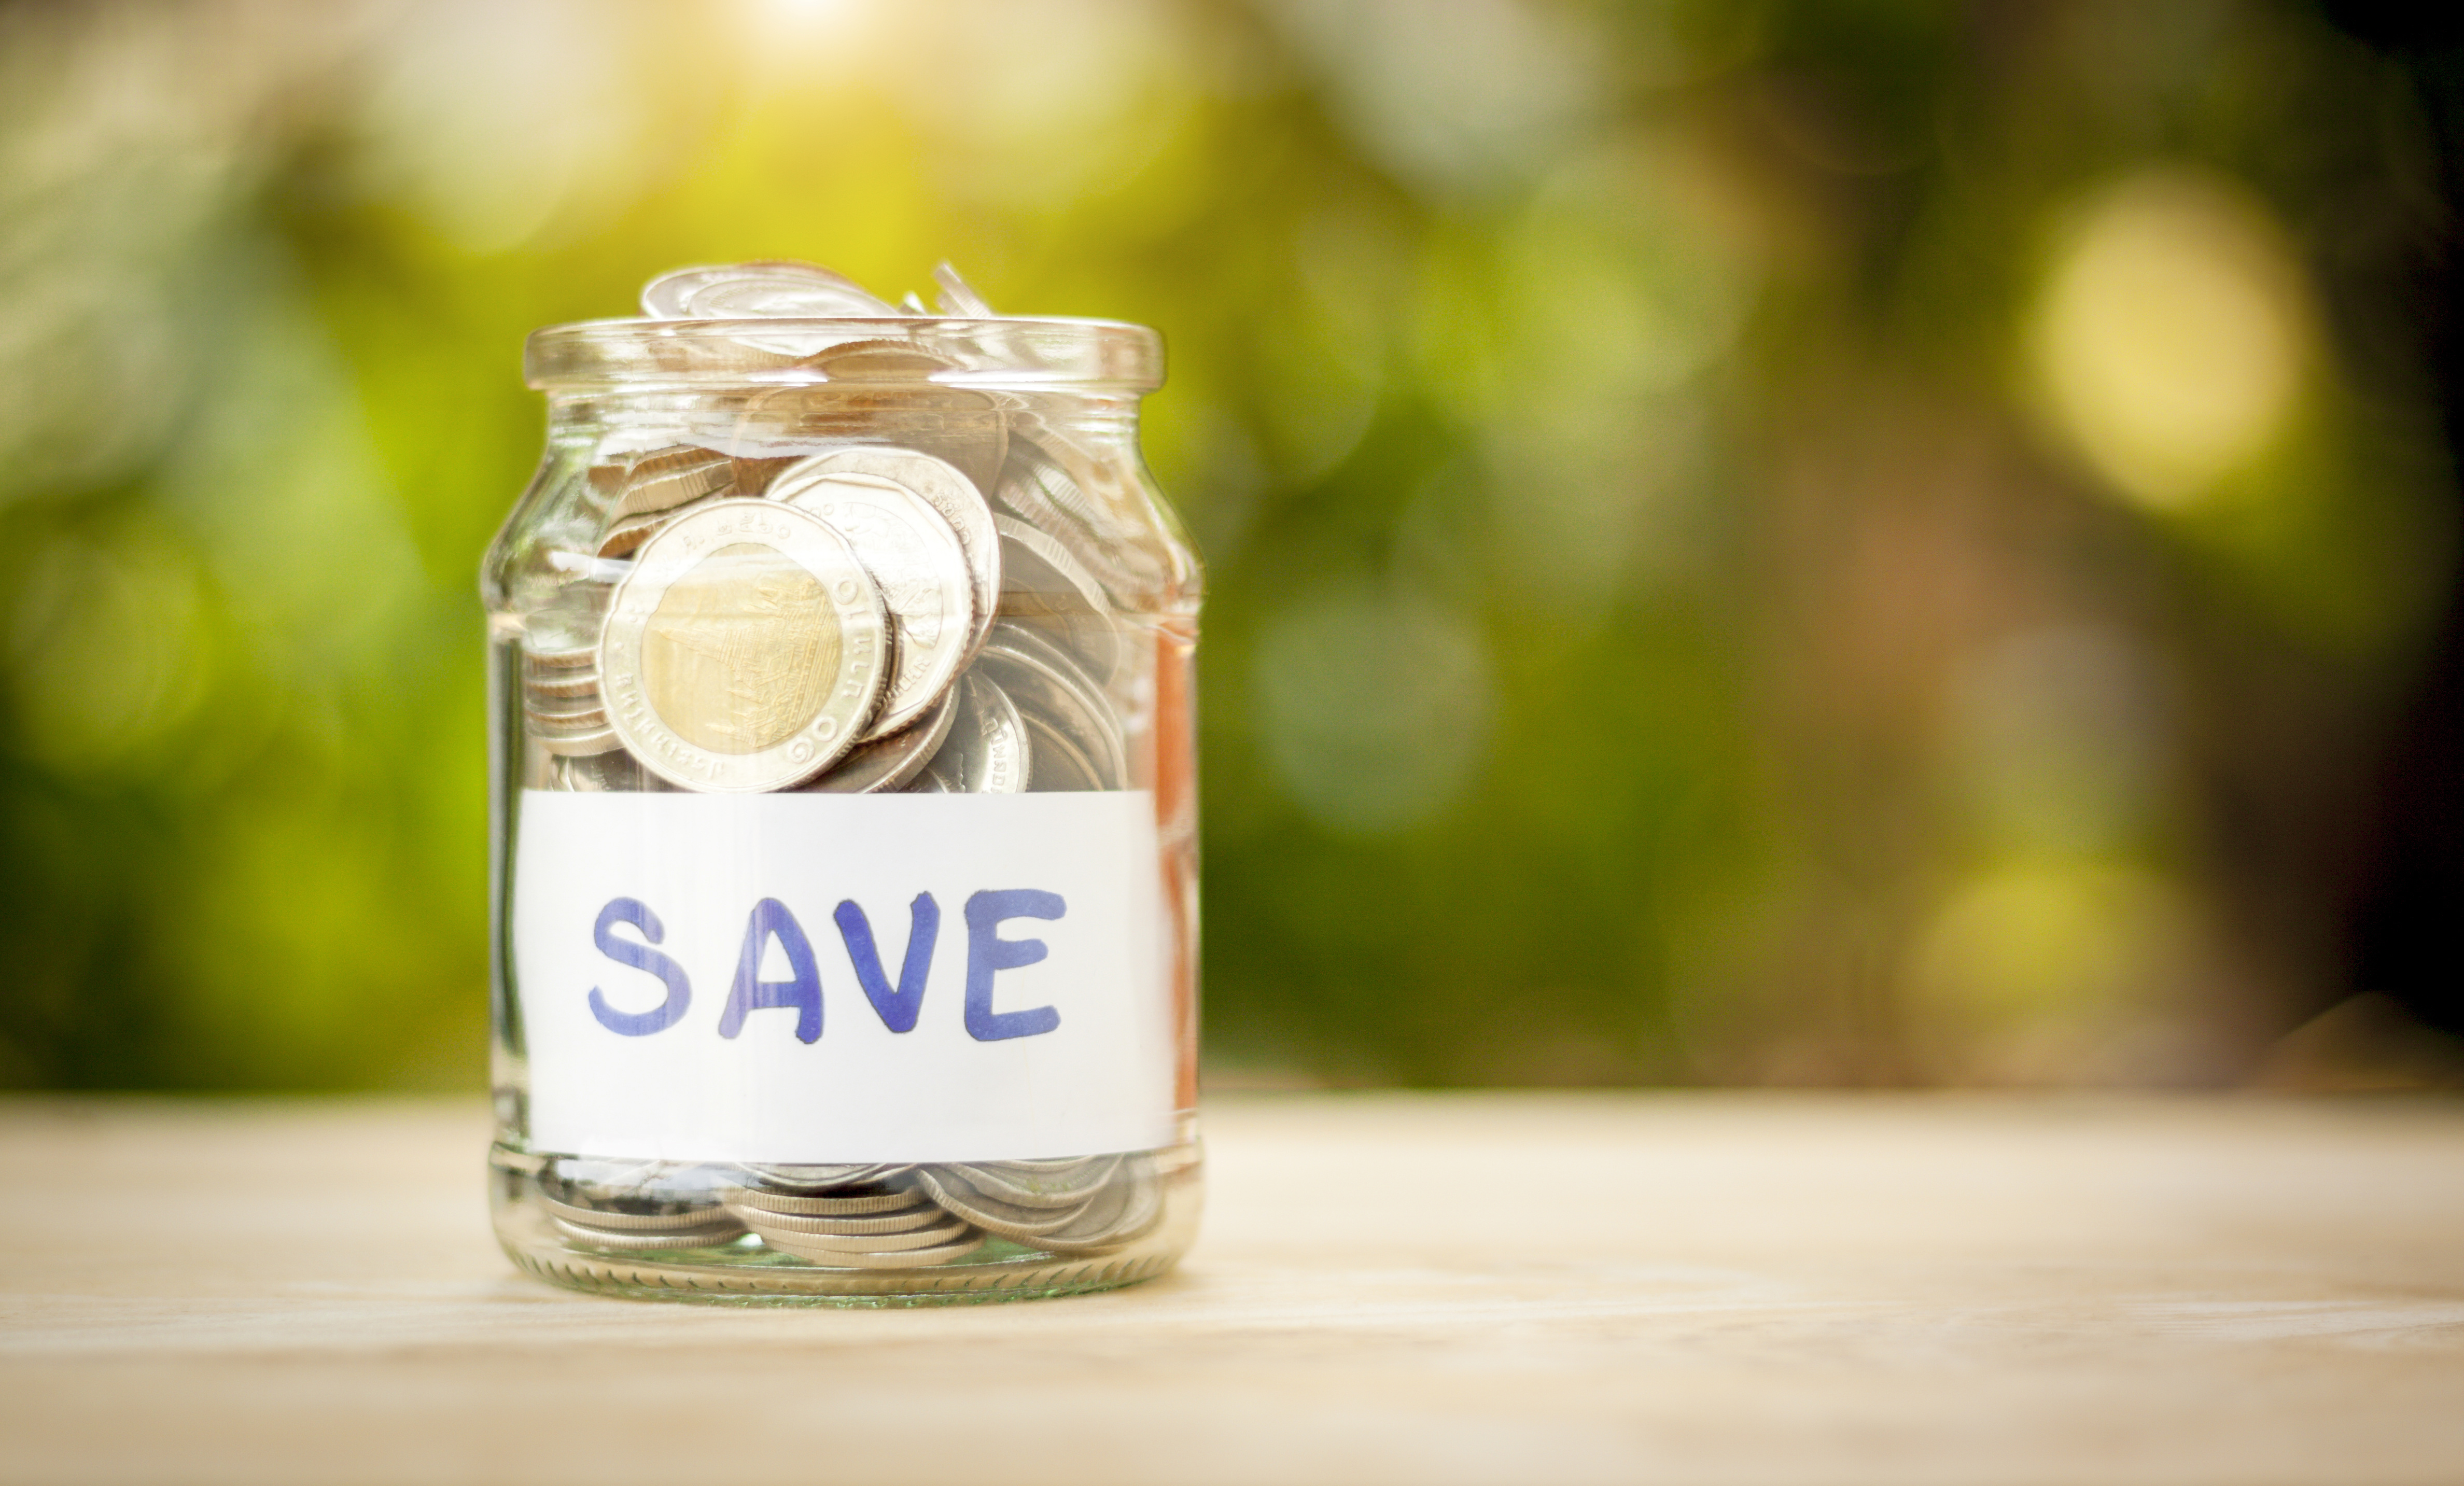 Full coins in a jar. Saving money. Growing concept.Save money for children and future.